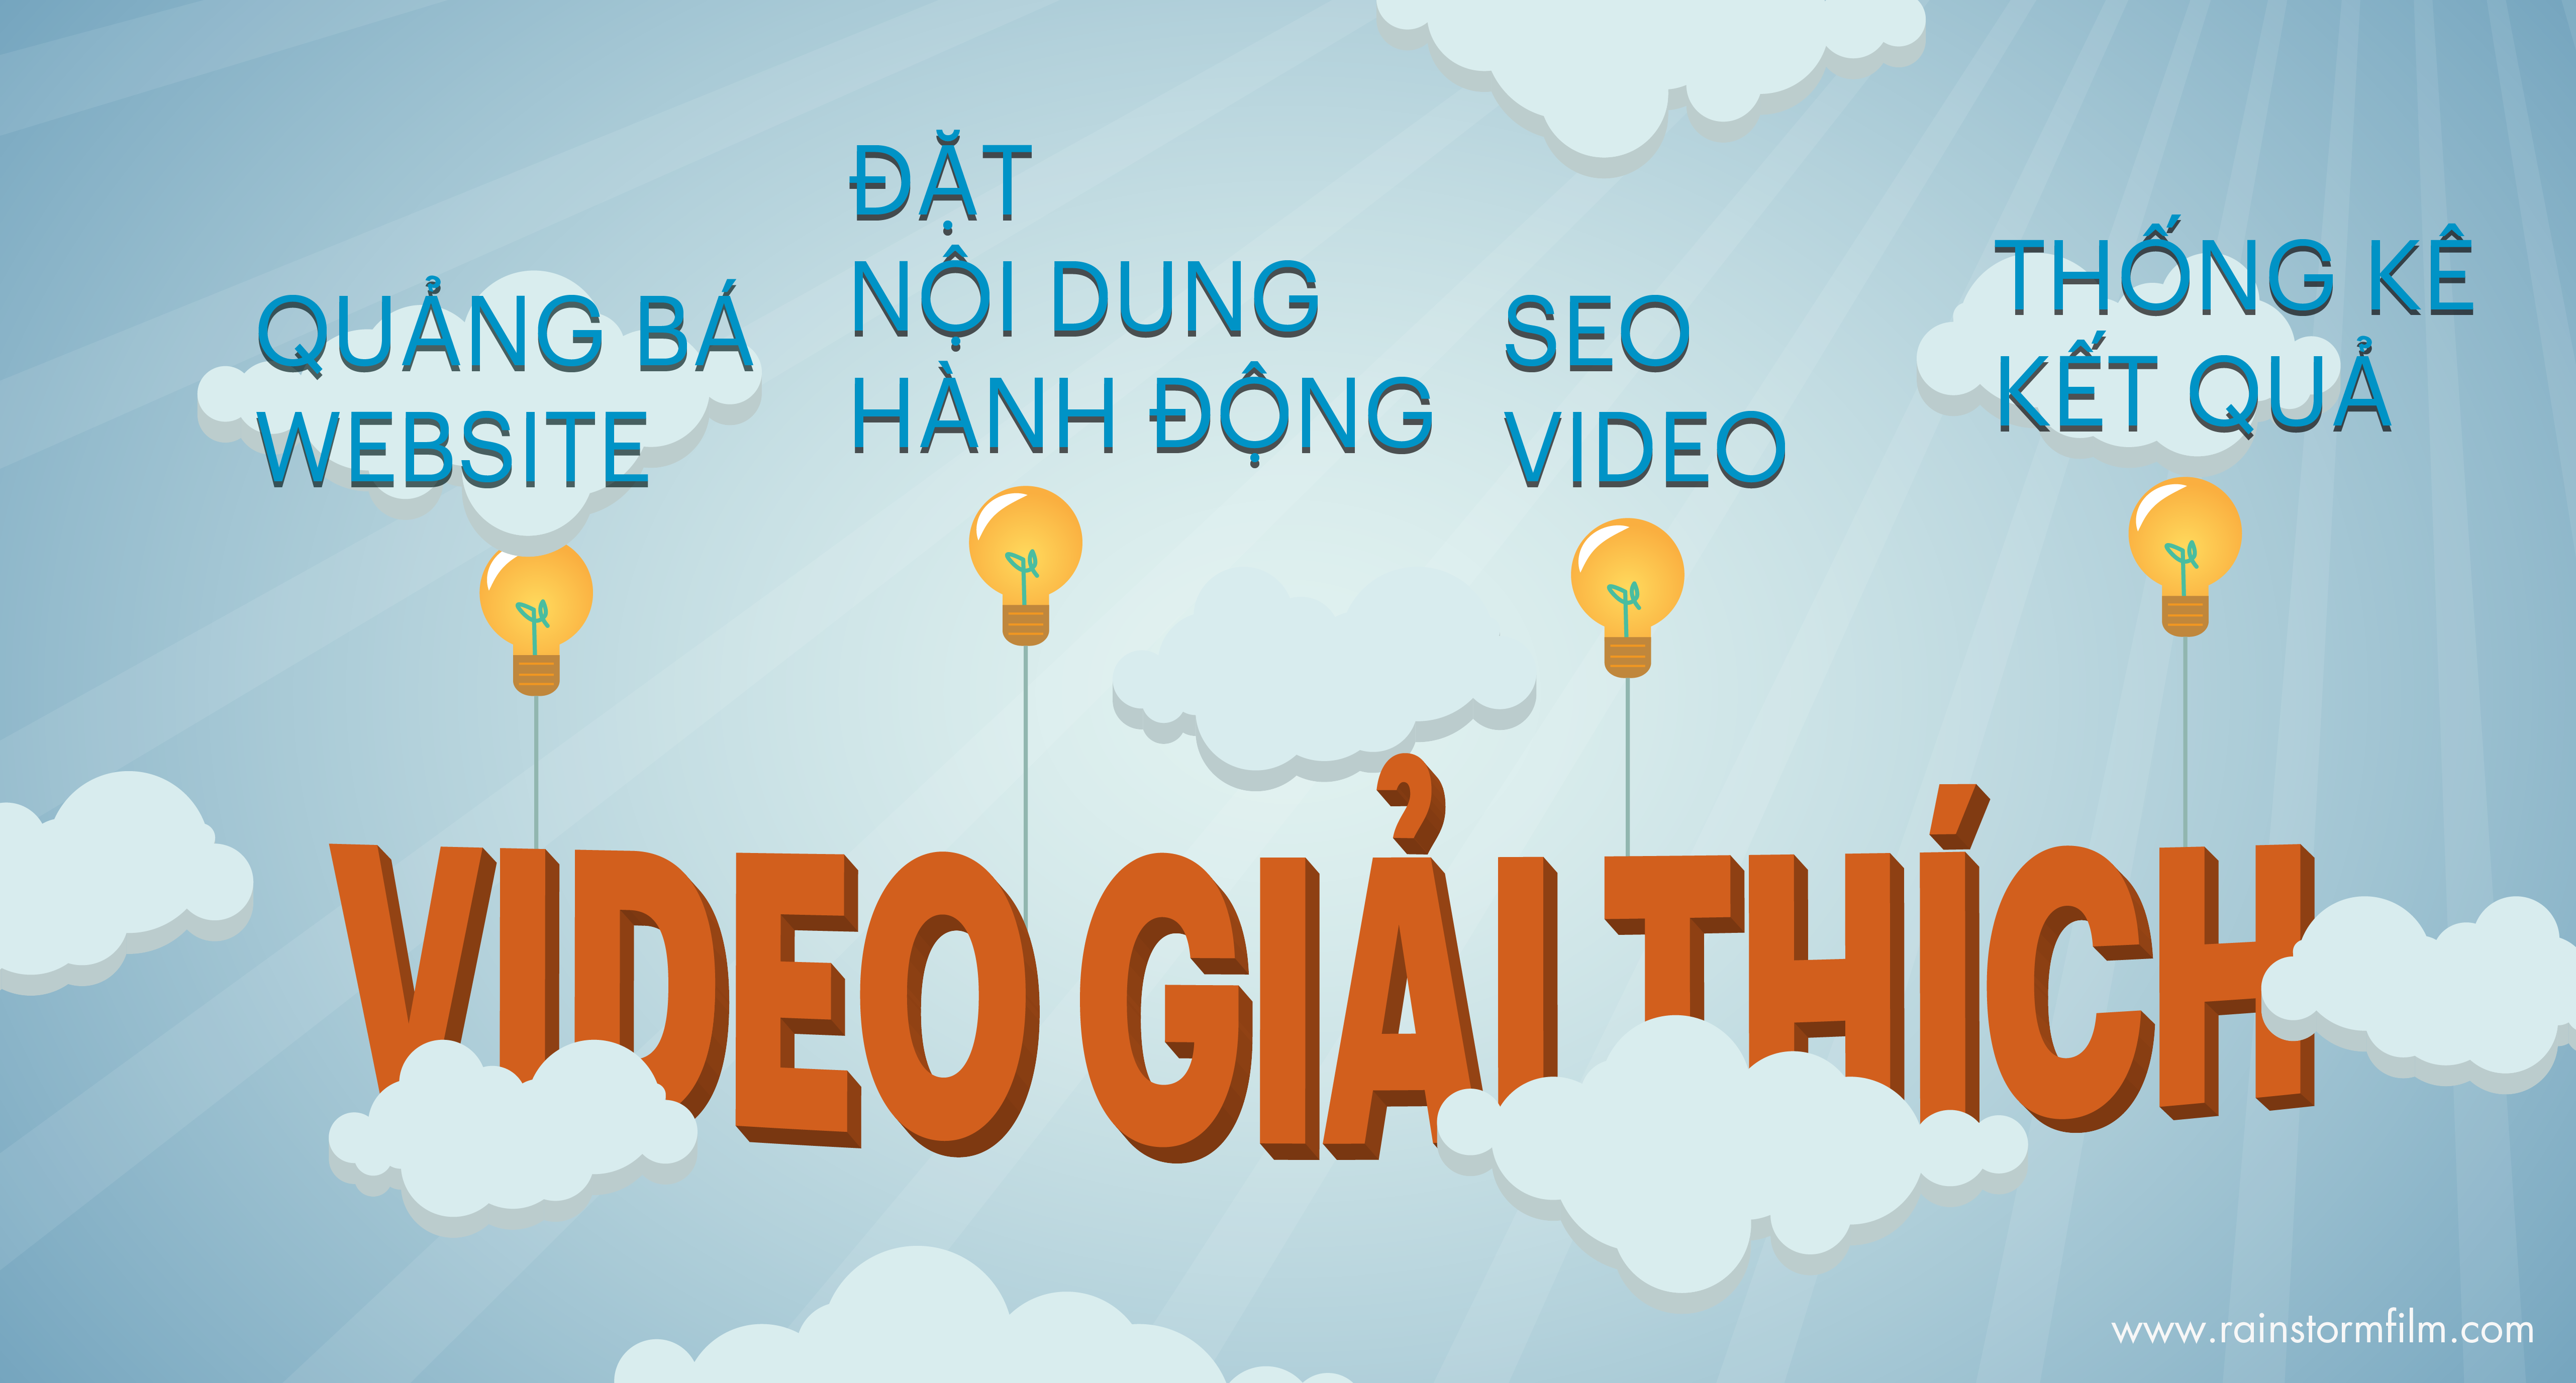 Video giải thích explainer - Rainstorm Film